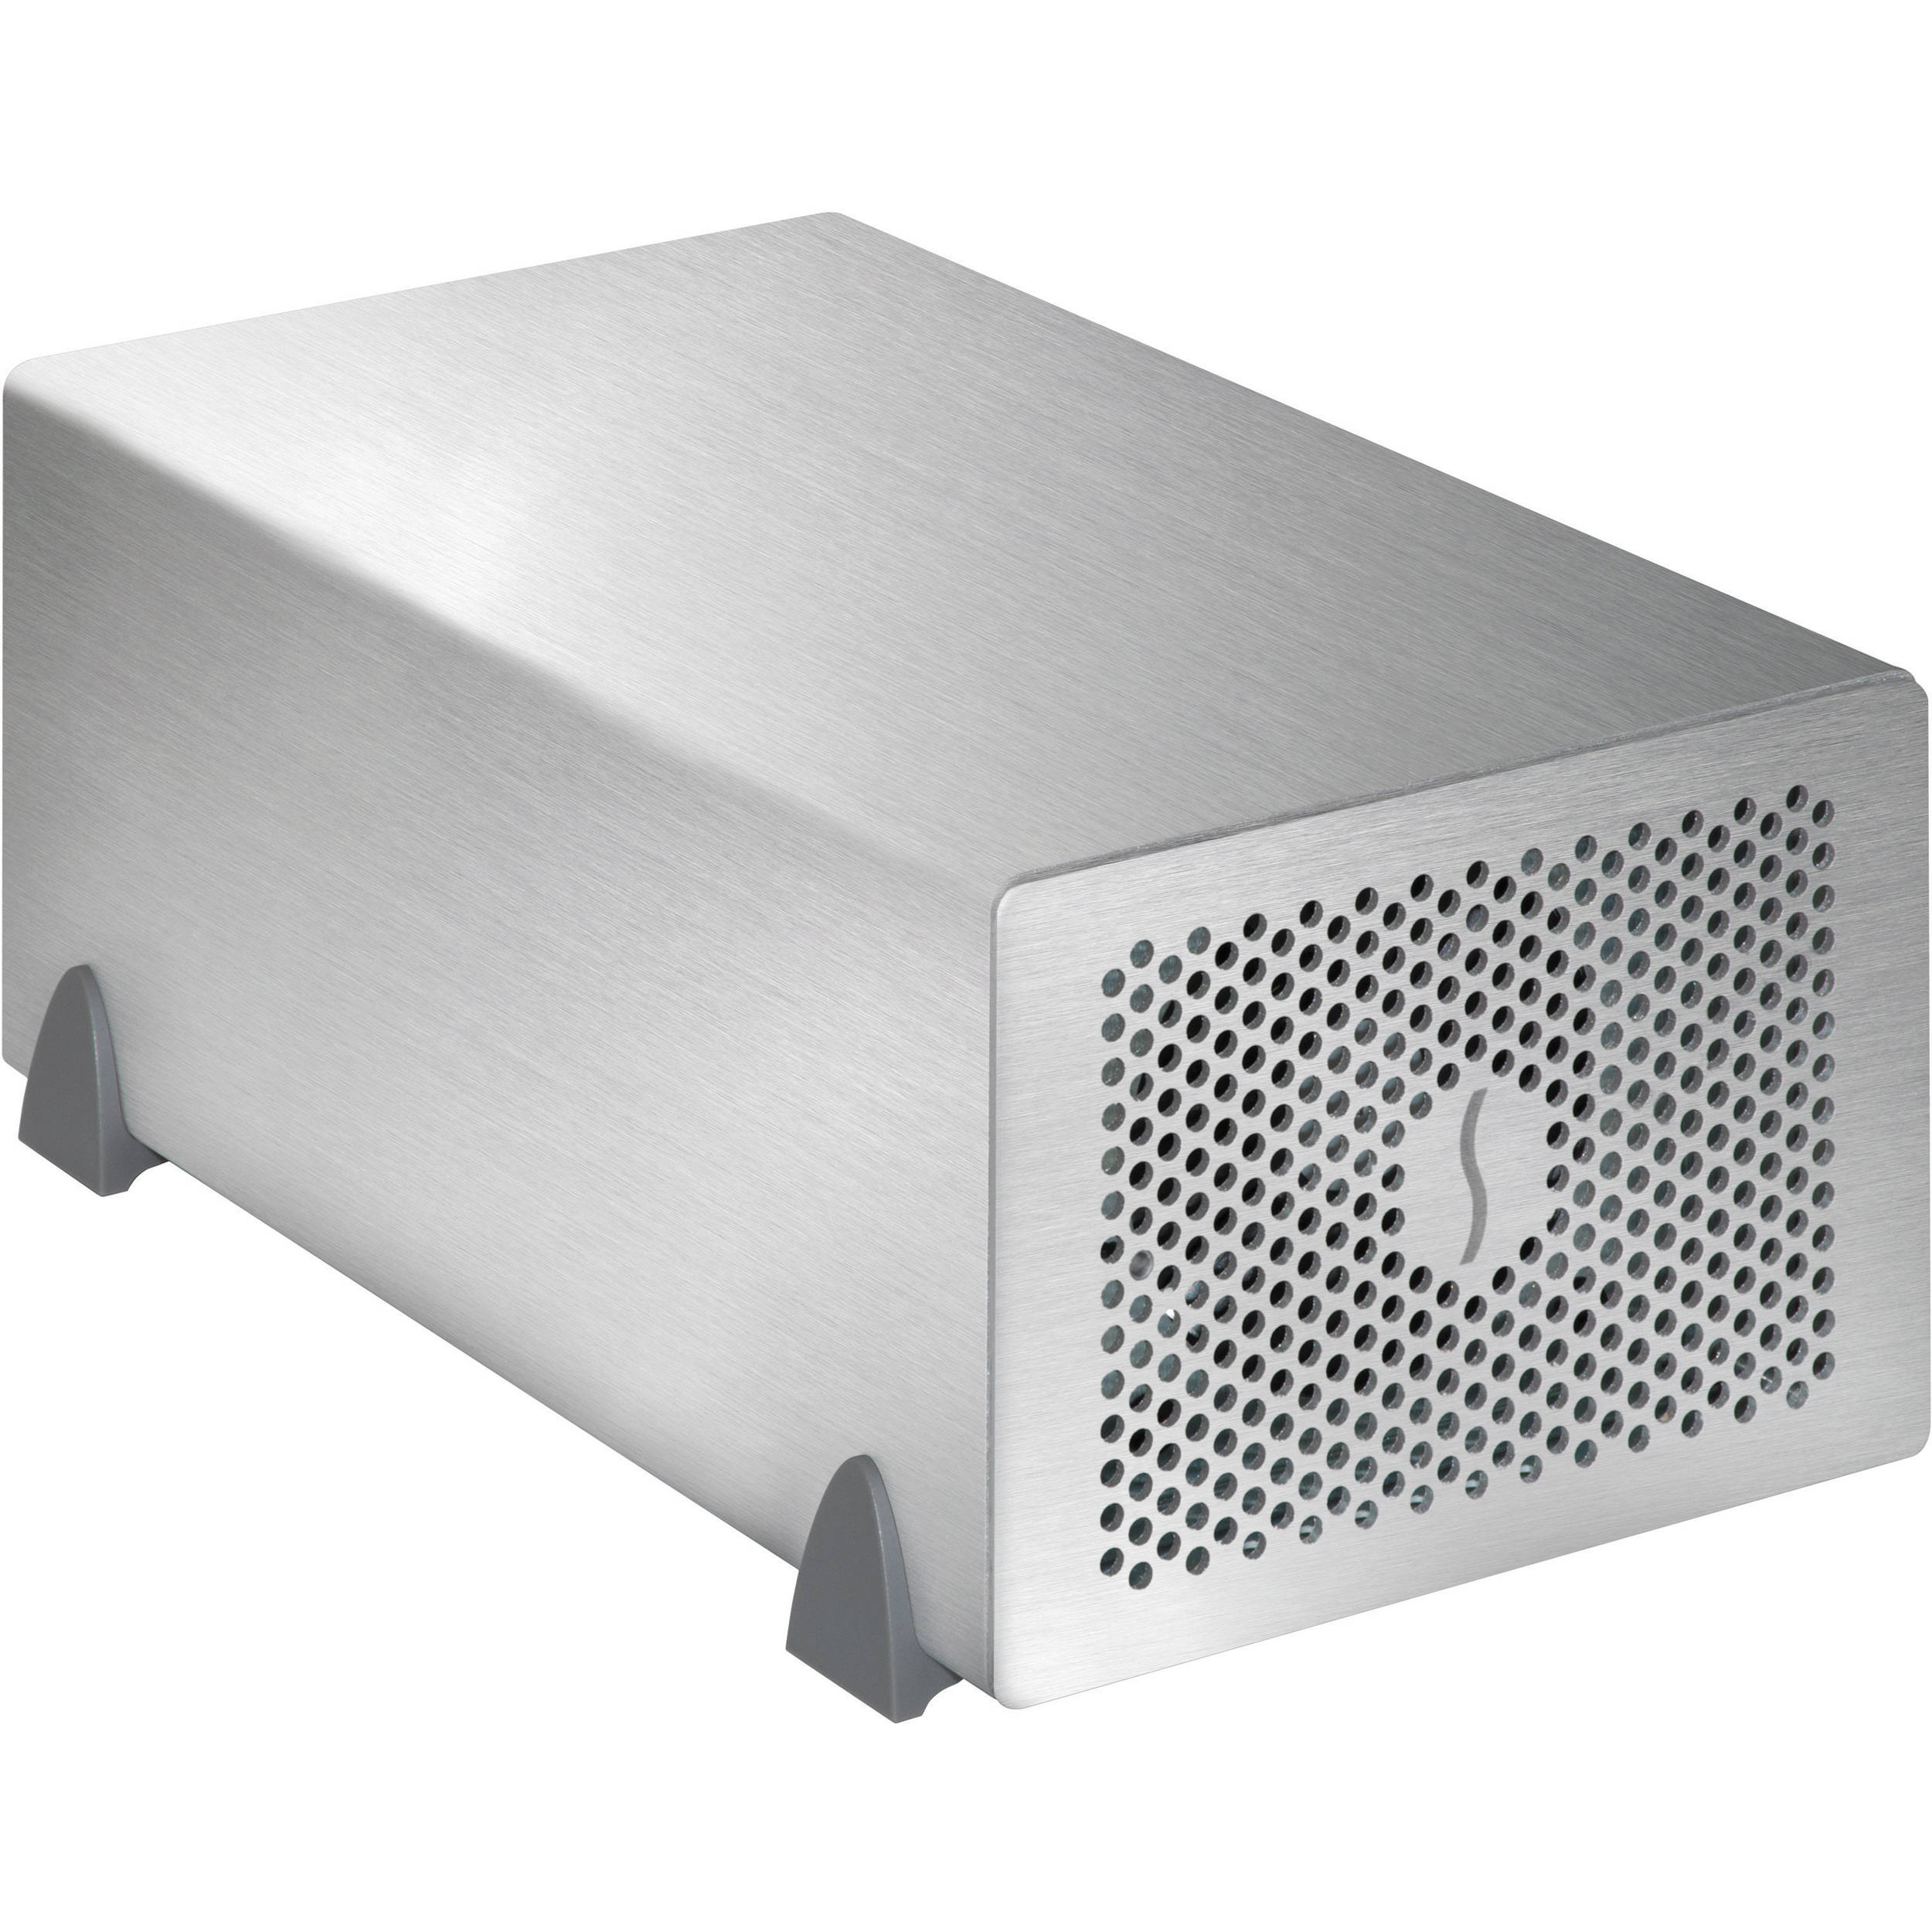 Sonnet(ECHO-EXP-SE2) Echo Express SE II Thunderbolt 2-to-PCIe Card Expansion System